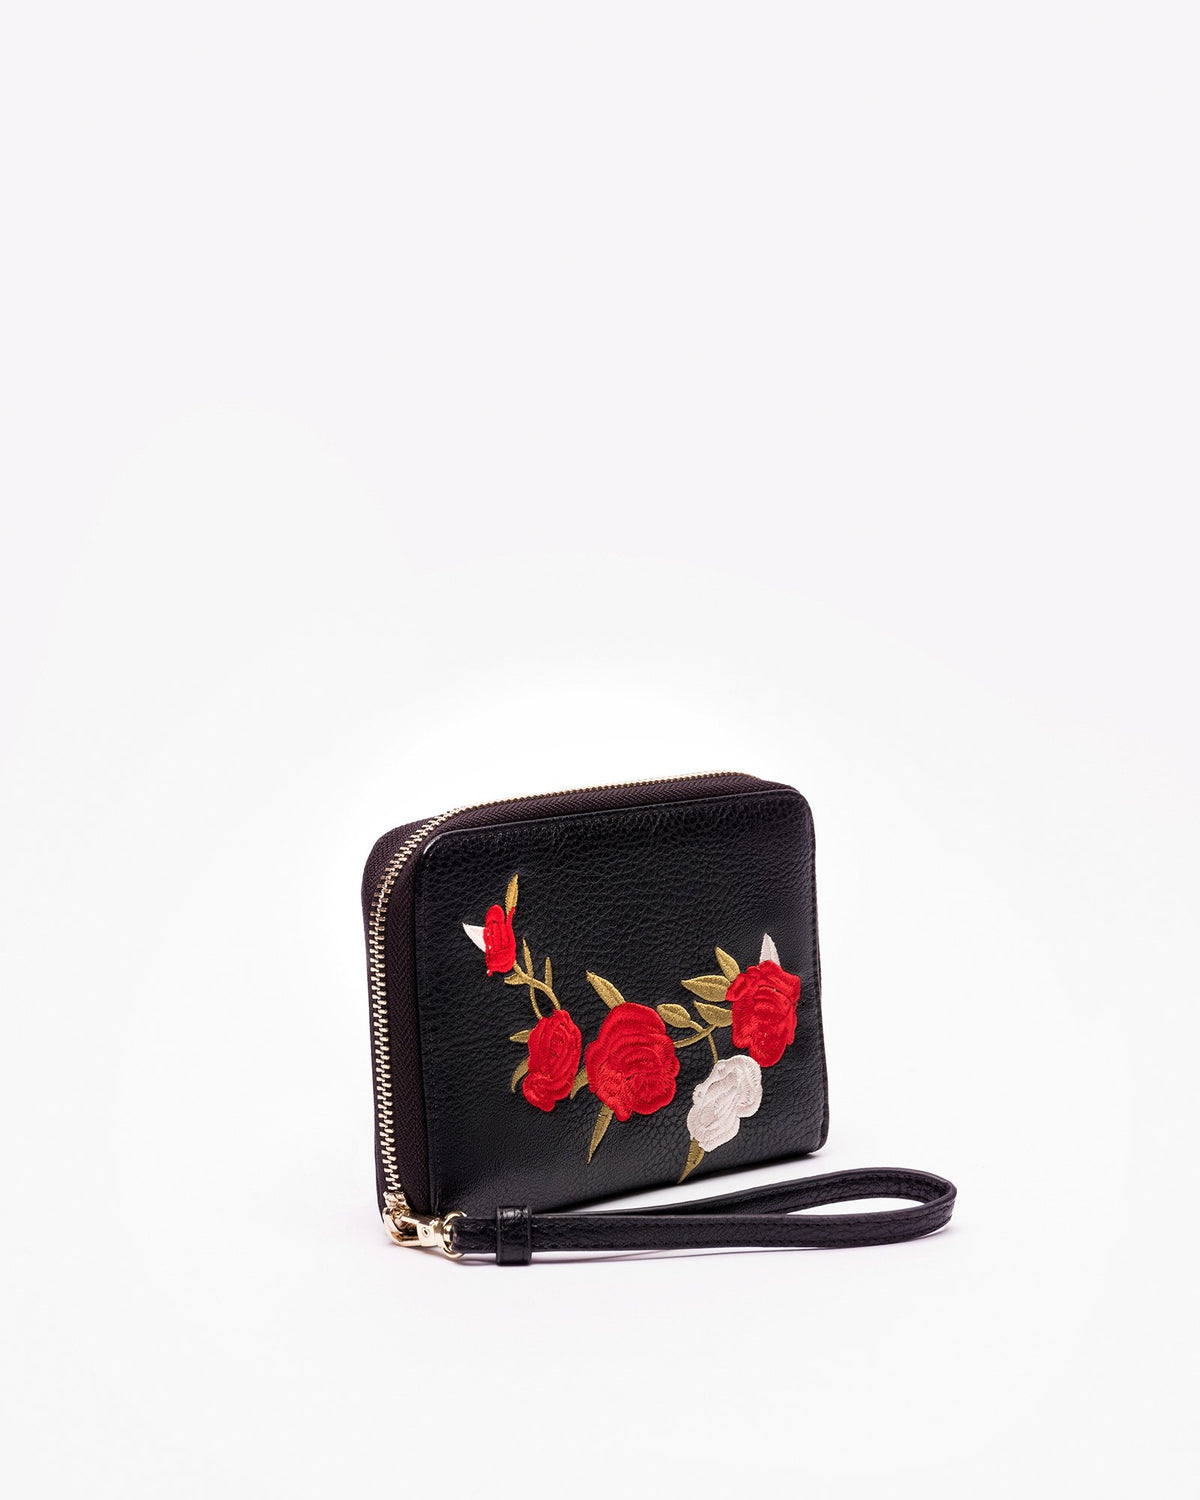 Jami - Vegan Leather Embroidered Wallet